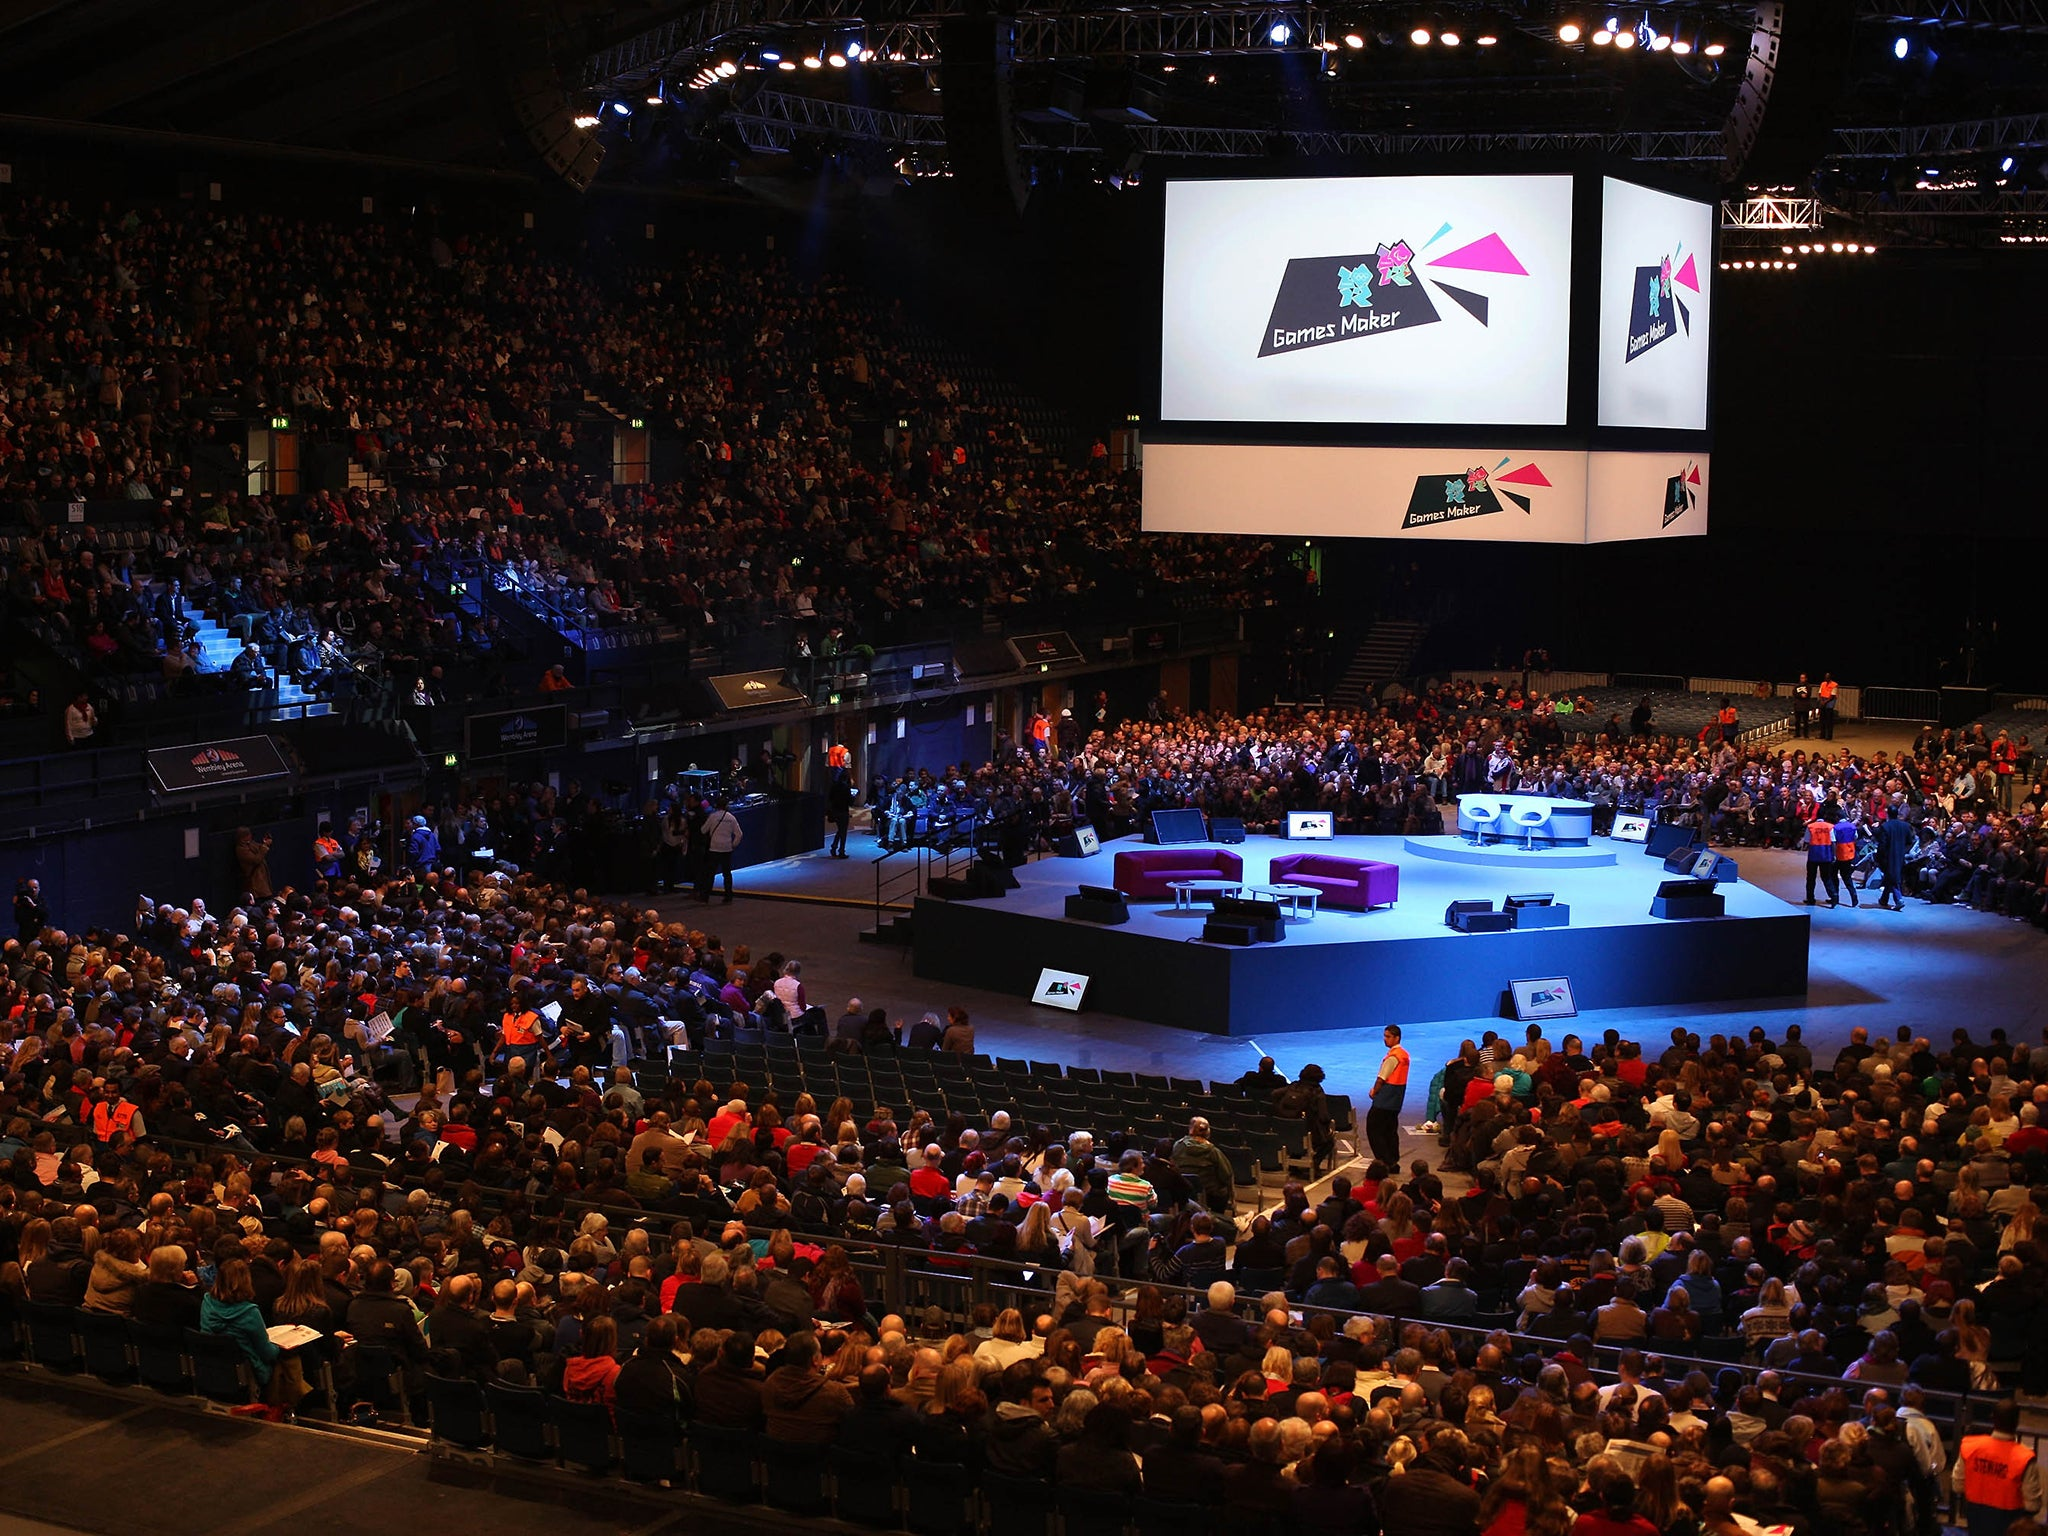 EU referendum: BBC under fire by In campaigners for proposing 'bear pit' Wembley Arena televised debate   The Independent